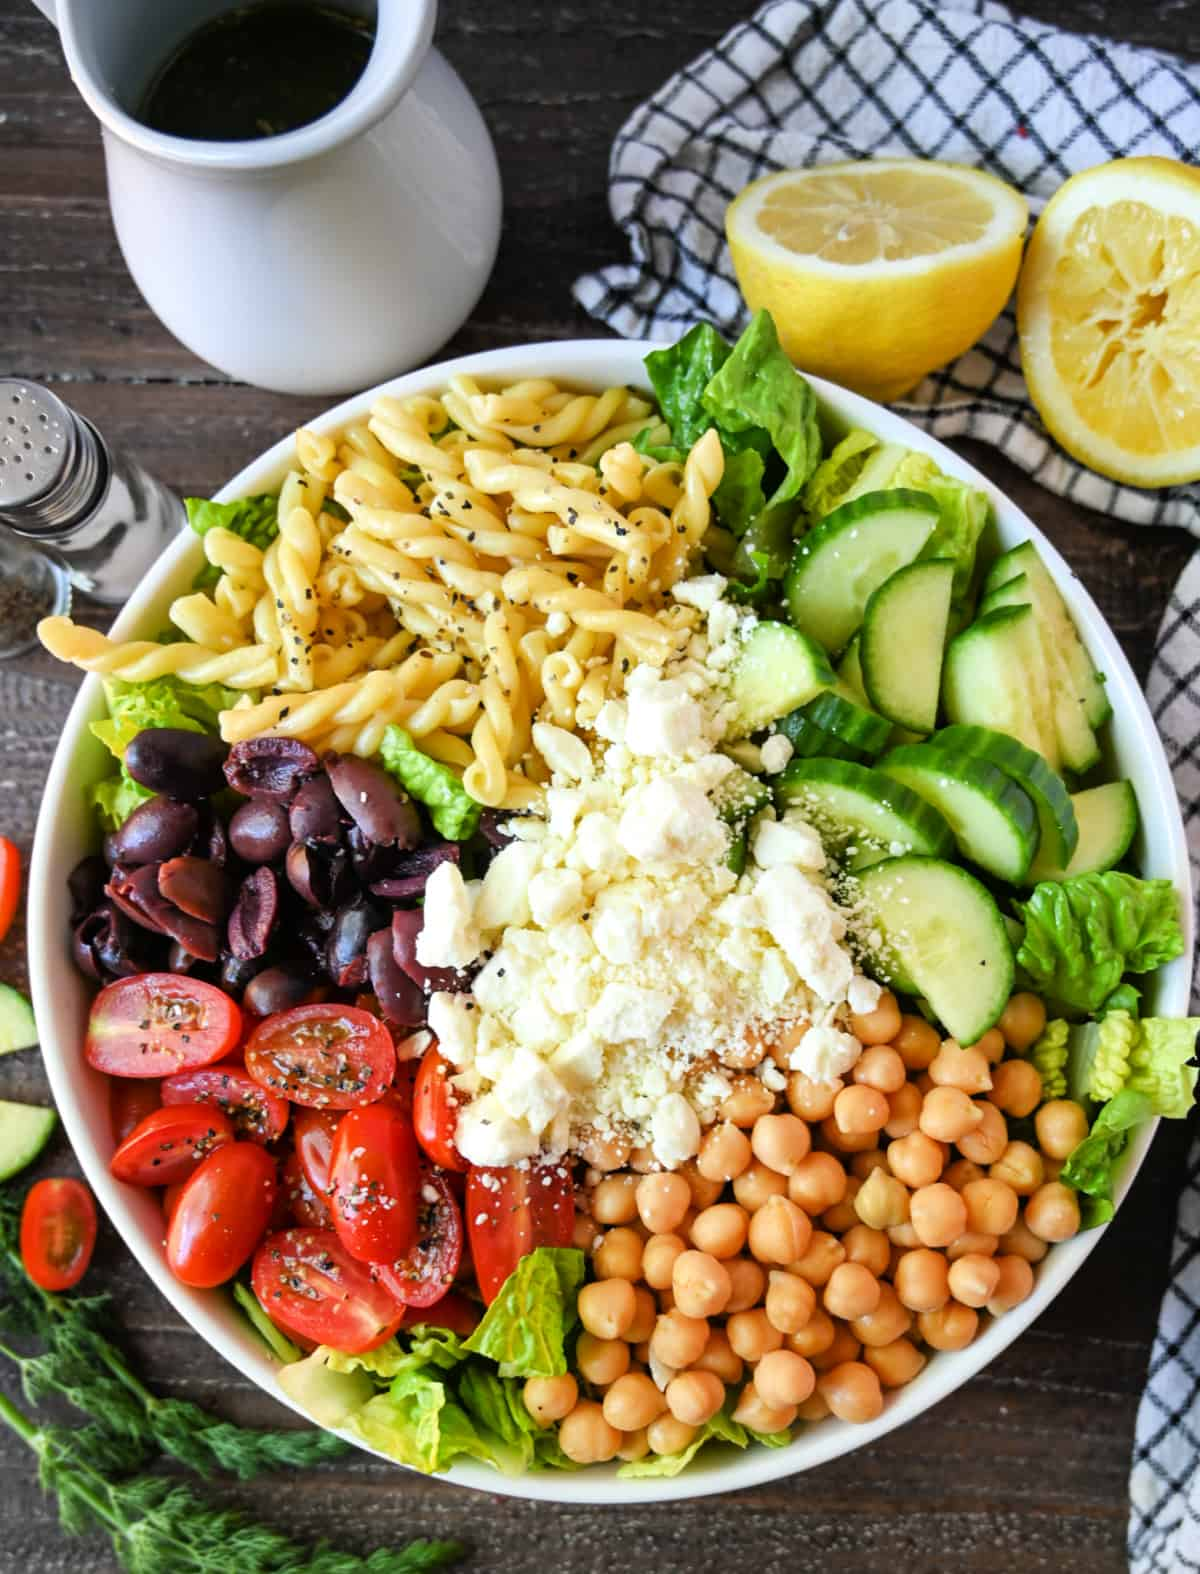 All the ingredients placed into a large white bowl ready to toss.